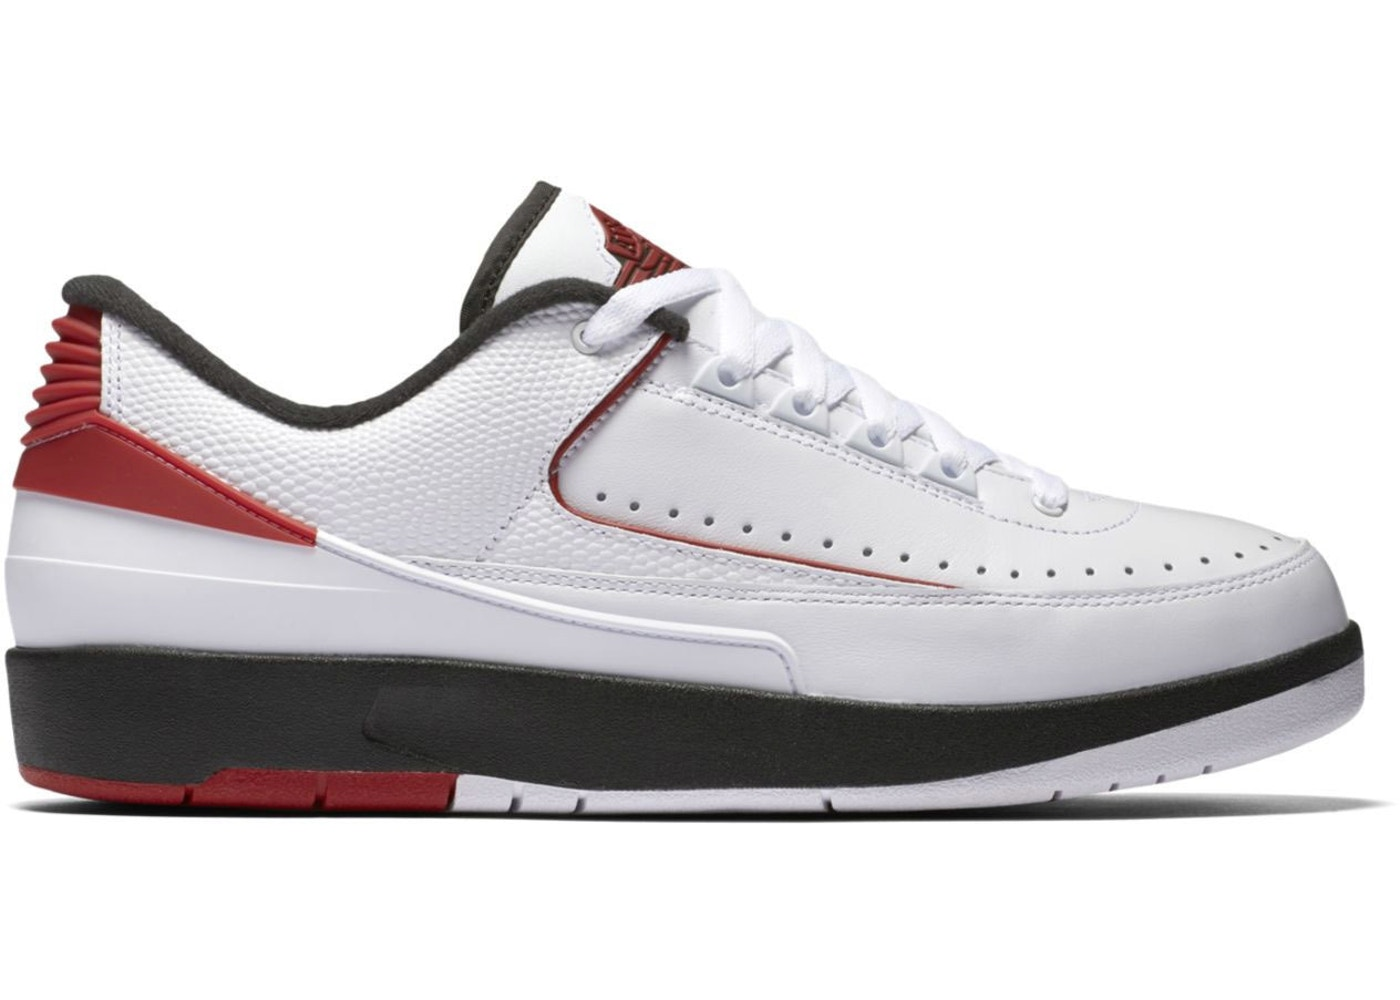 6f9083d13387 Jordan 2 Retro Low Chicago (2016) - 832819-101